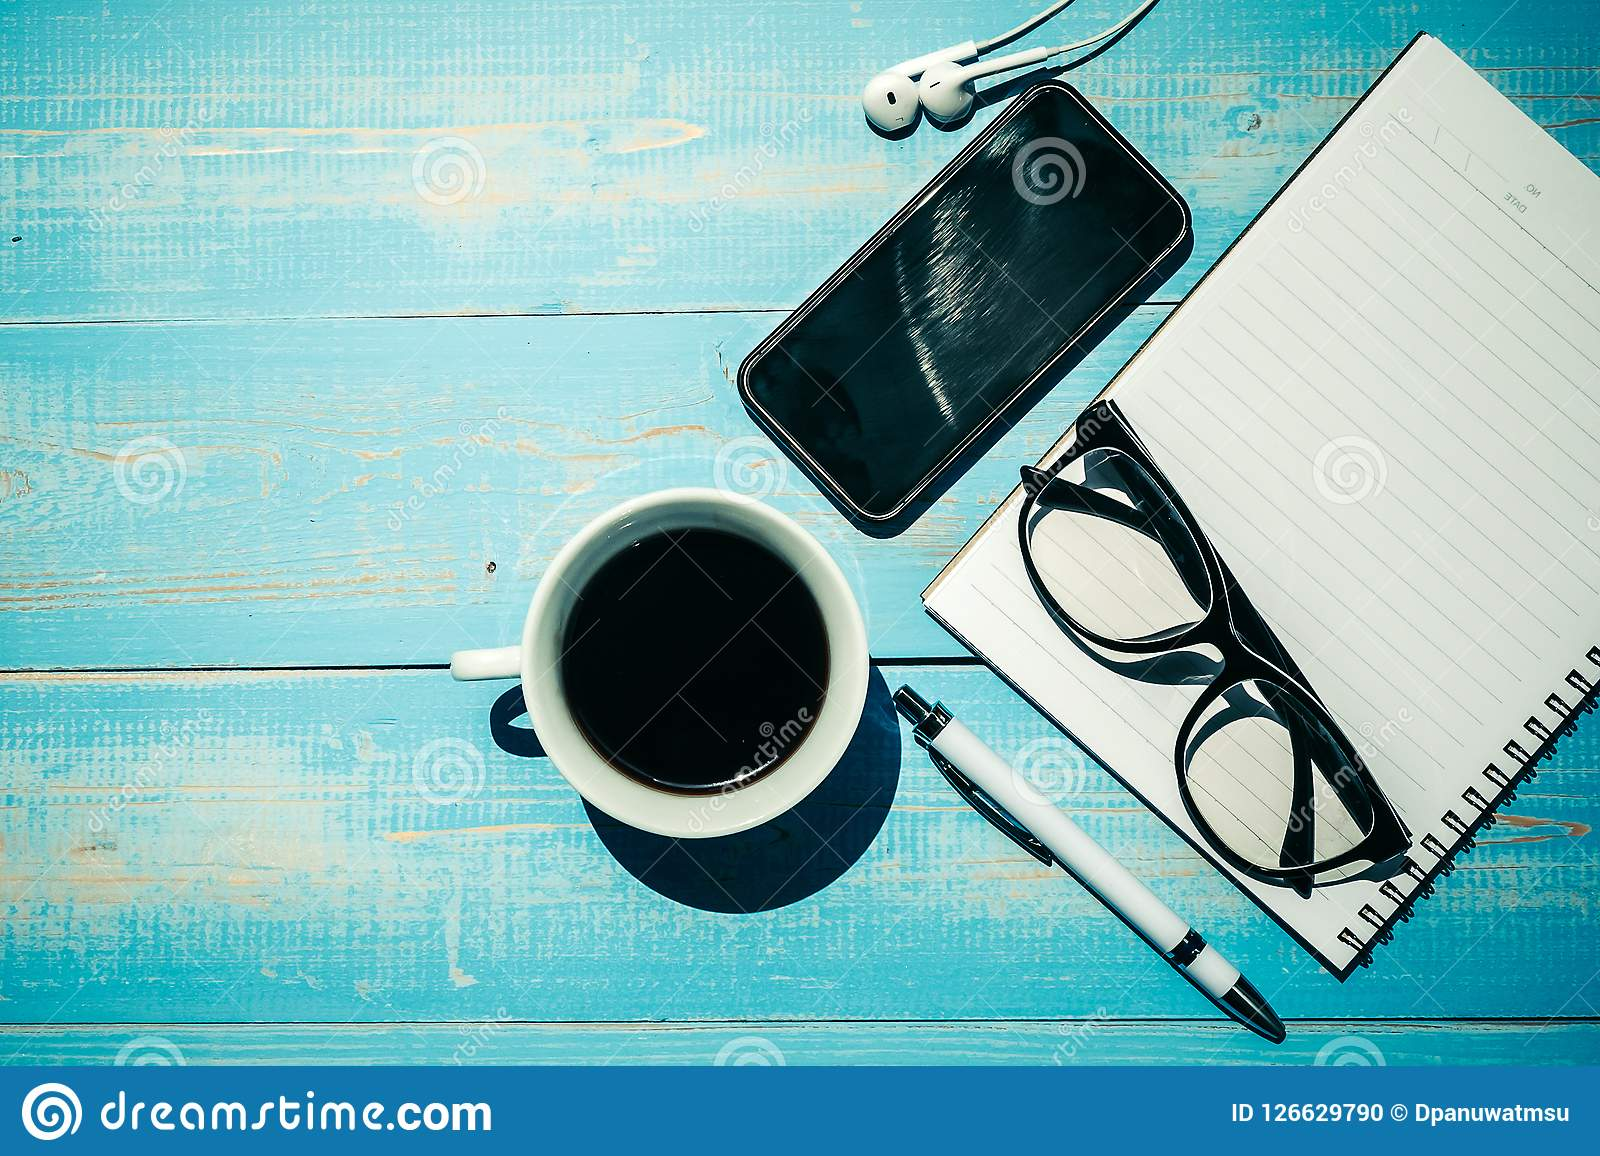 Cup of black coffee and smart phone with office supplies; pen, notebook and eyes glasses on wooden table background